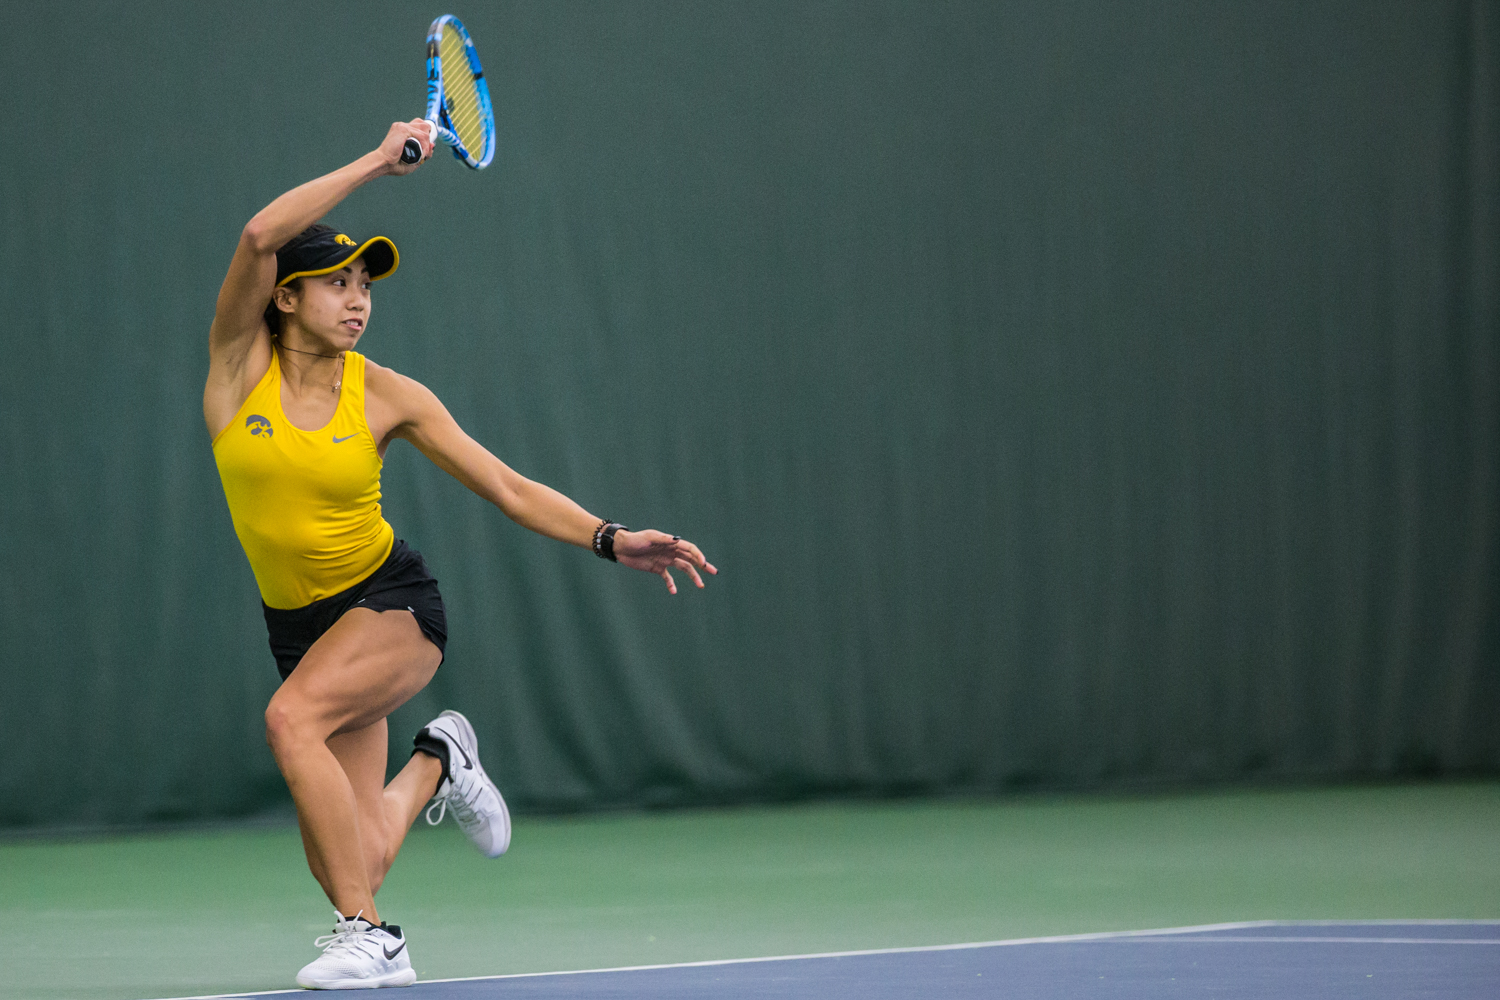 Iowa%27s+Michelle+Bacalla+hits+a+forehand+during+a+women%27s+tennis+matchup+between+Iowa+and+Iowa+State+at+the+Hawkeye+Tennis+and+Recreation+Complex+on+Friday%2C+February+8%2C+2019.++The+Hawkeyes+dropped+the+doubles+point+but+swept+singles+matches%2C+defeating+the+Cyclones+4-1.